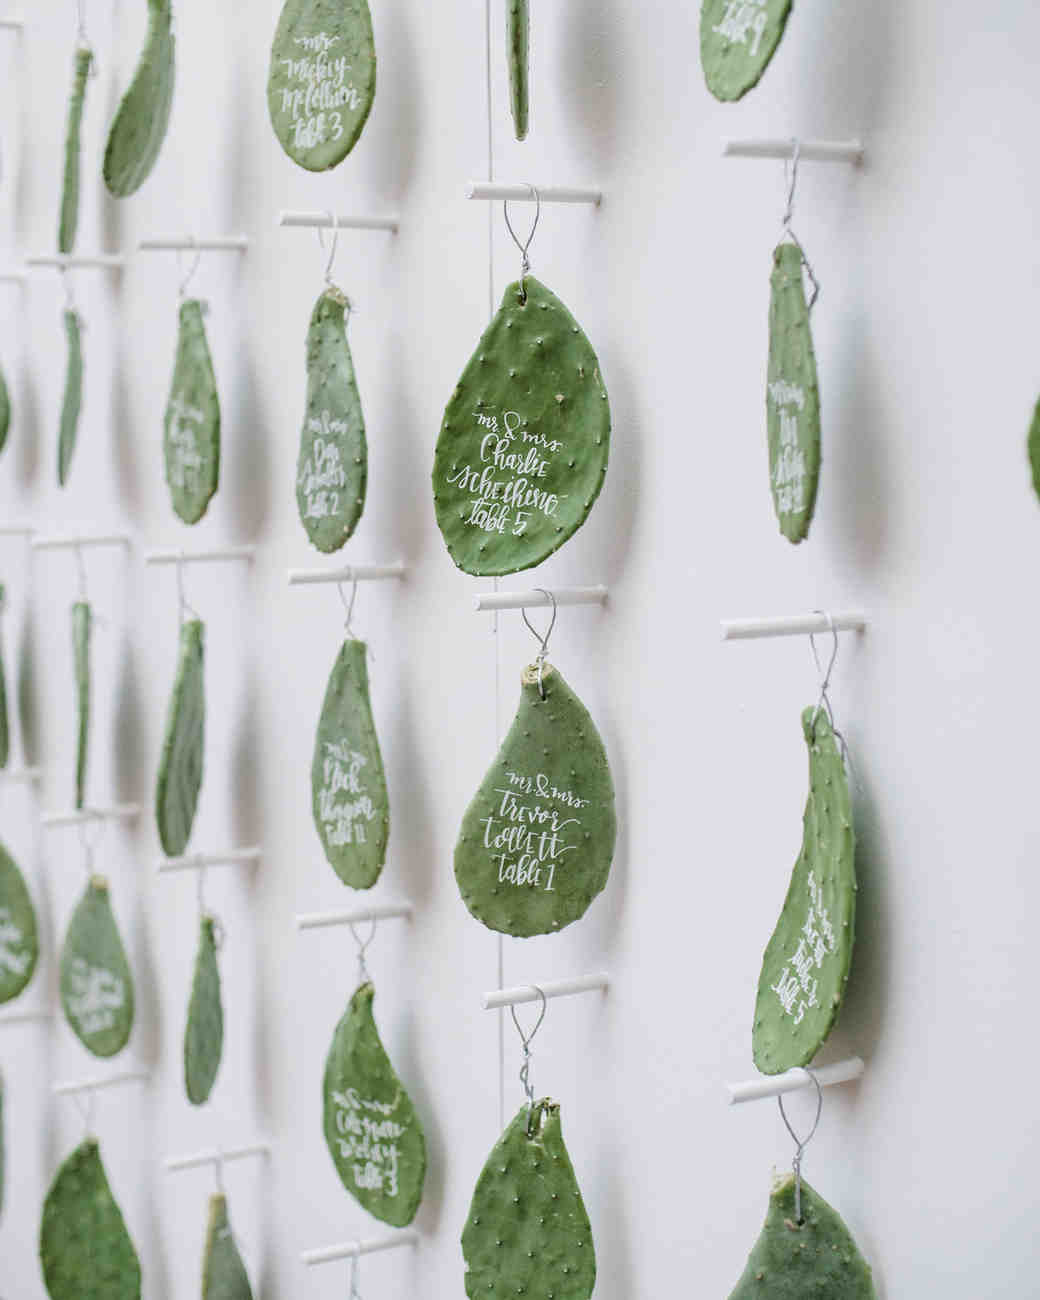 Hanging Cactus Escort Cards